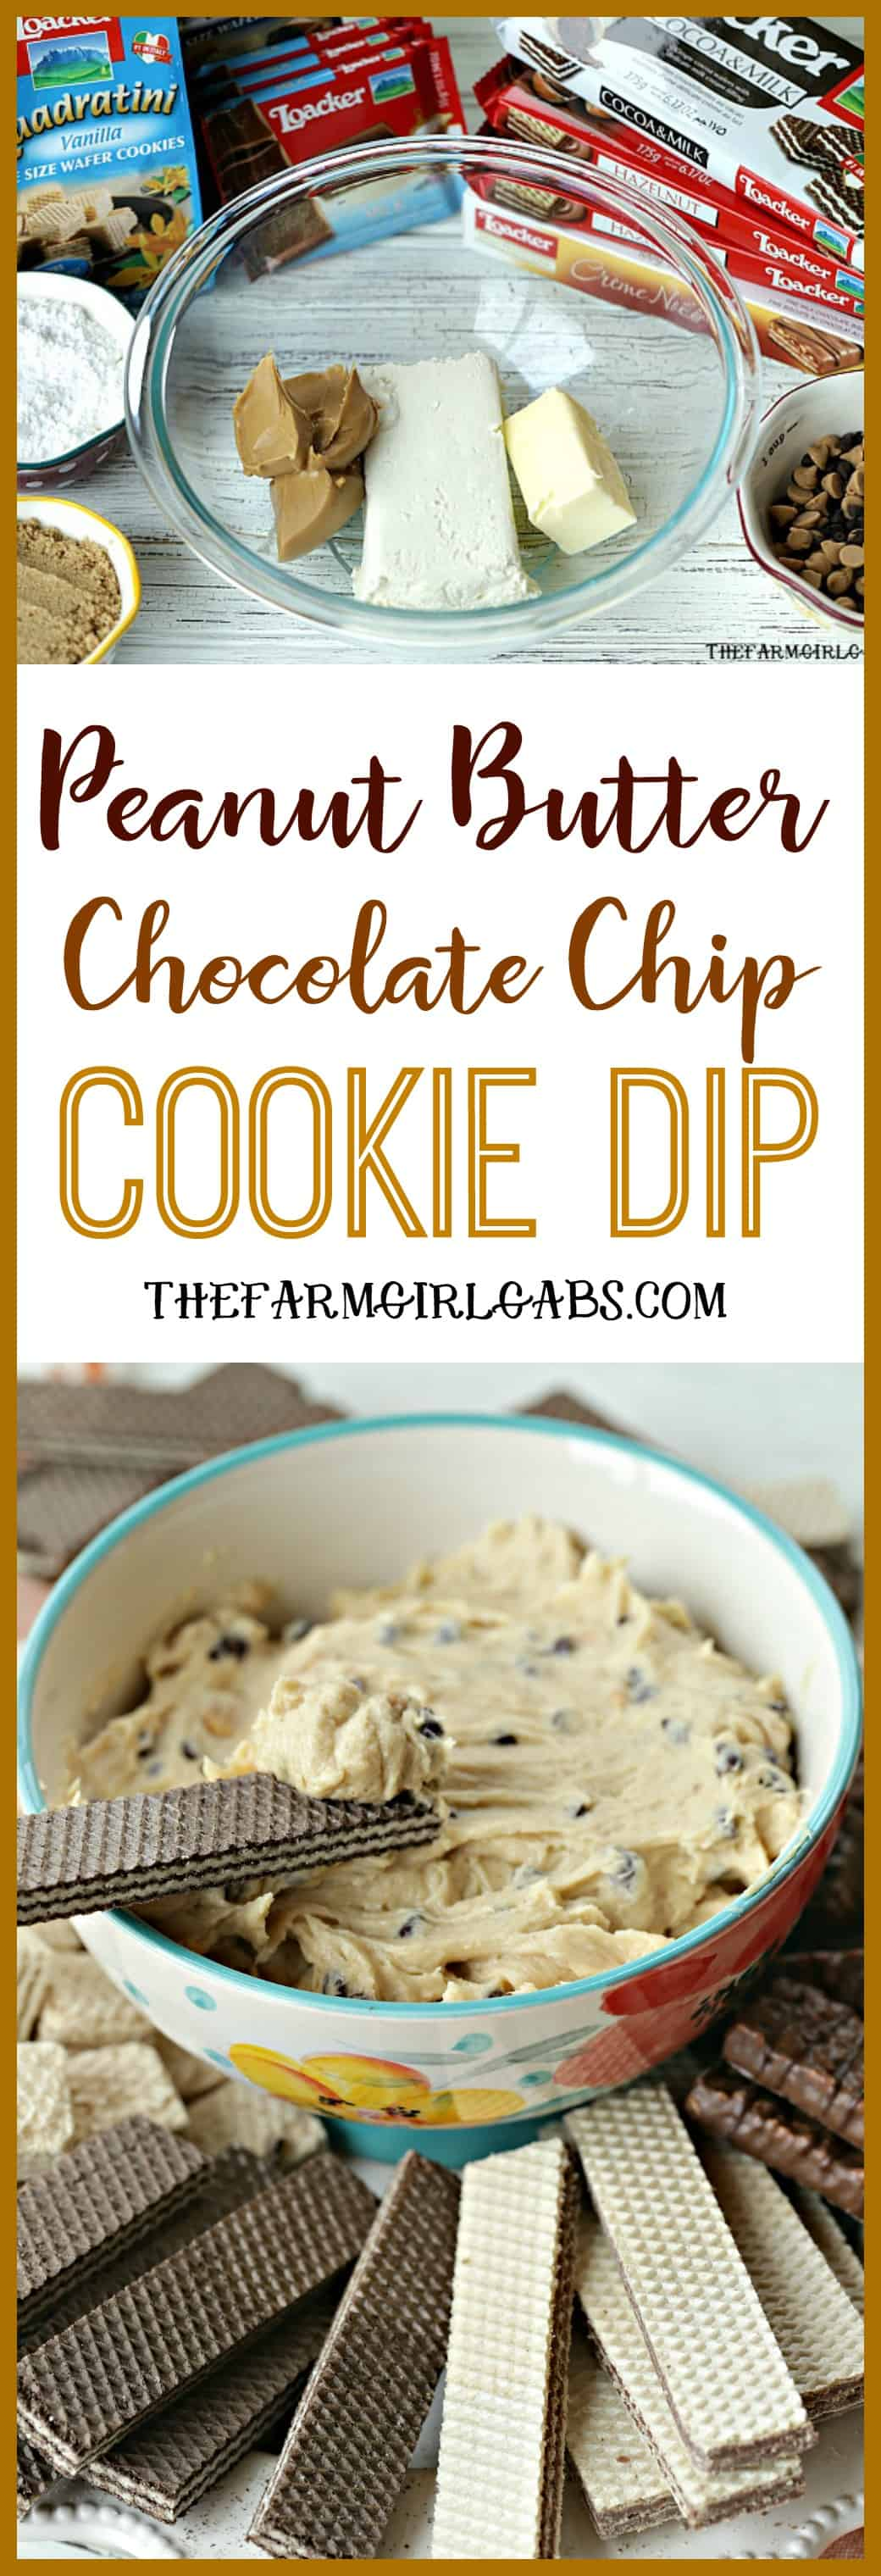 Serve this yummy Peanut Butter Chocolate Chip Cookie Dip at your next party. It's perfect for dessert. #Ad #LoackerLove #dip #dessert #cookiediprecipe